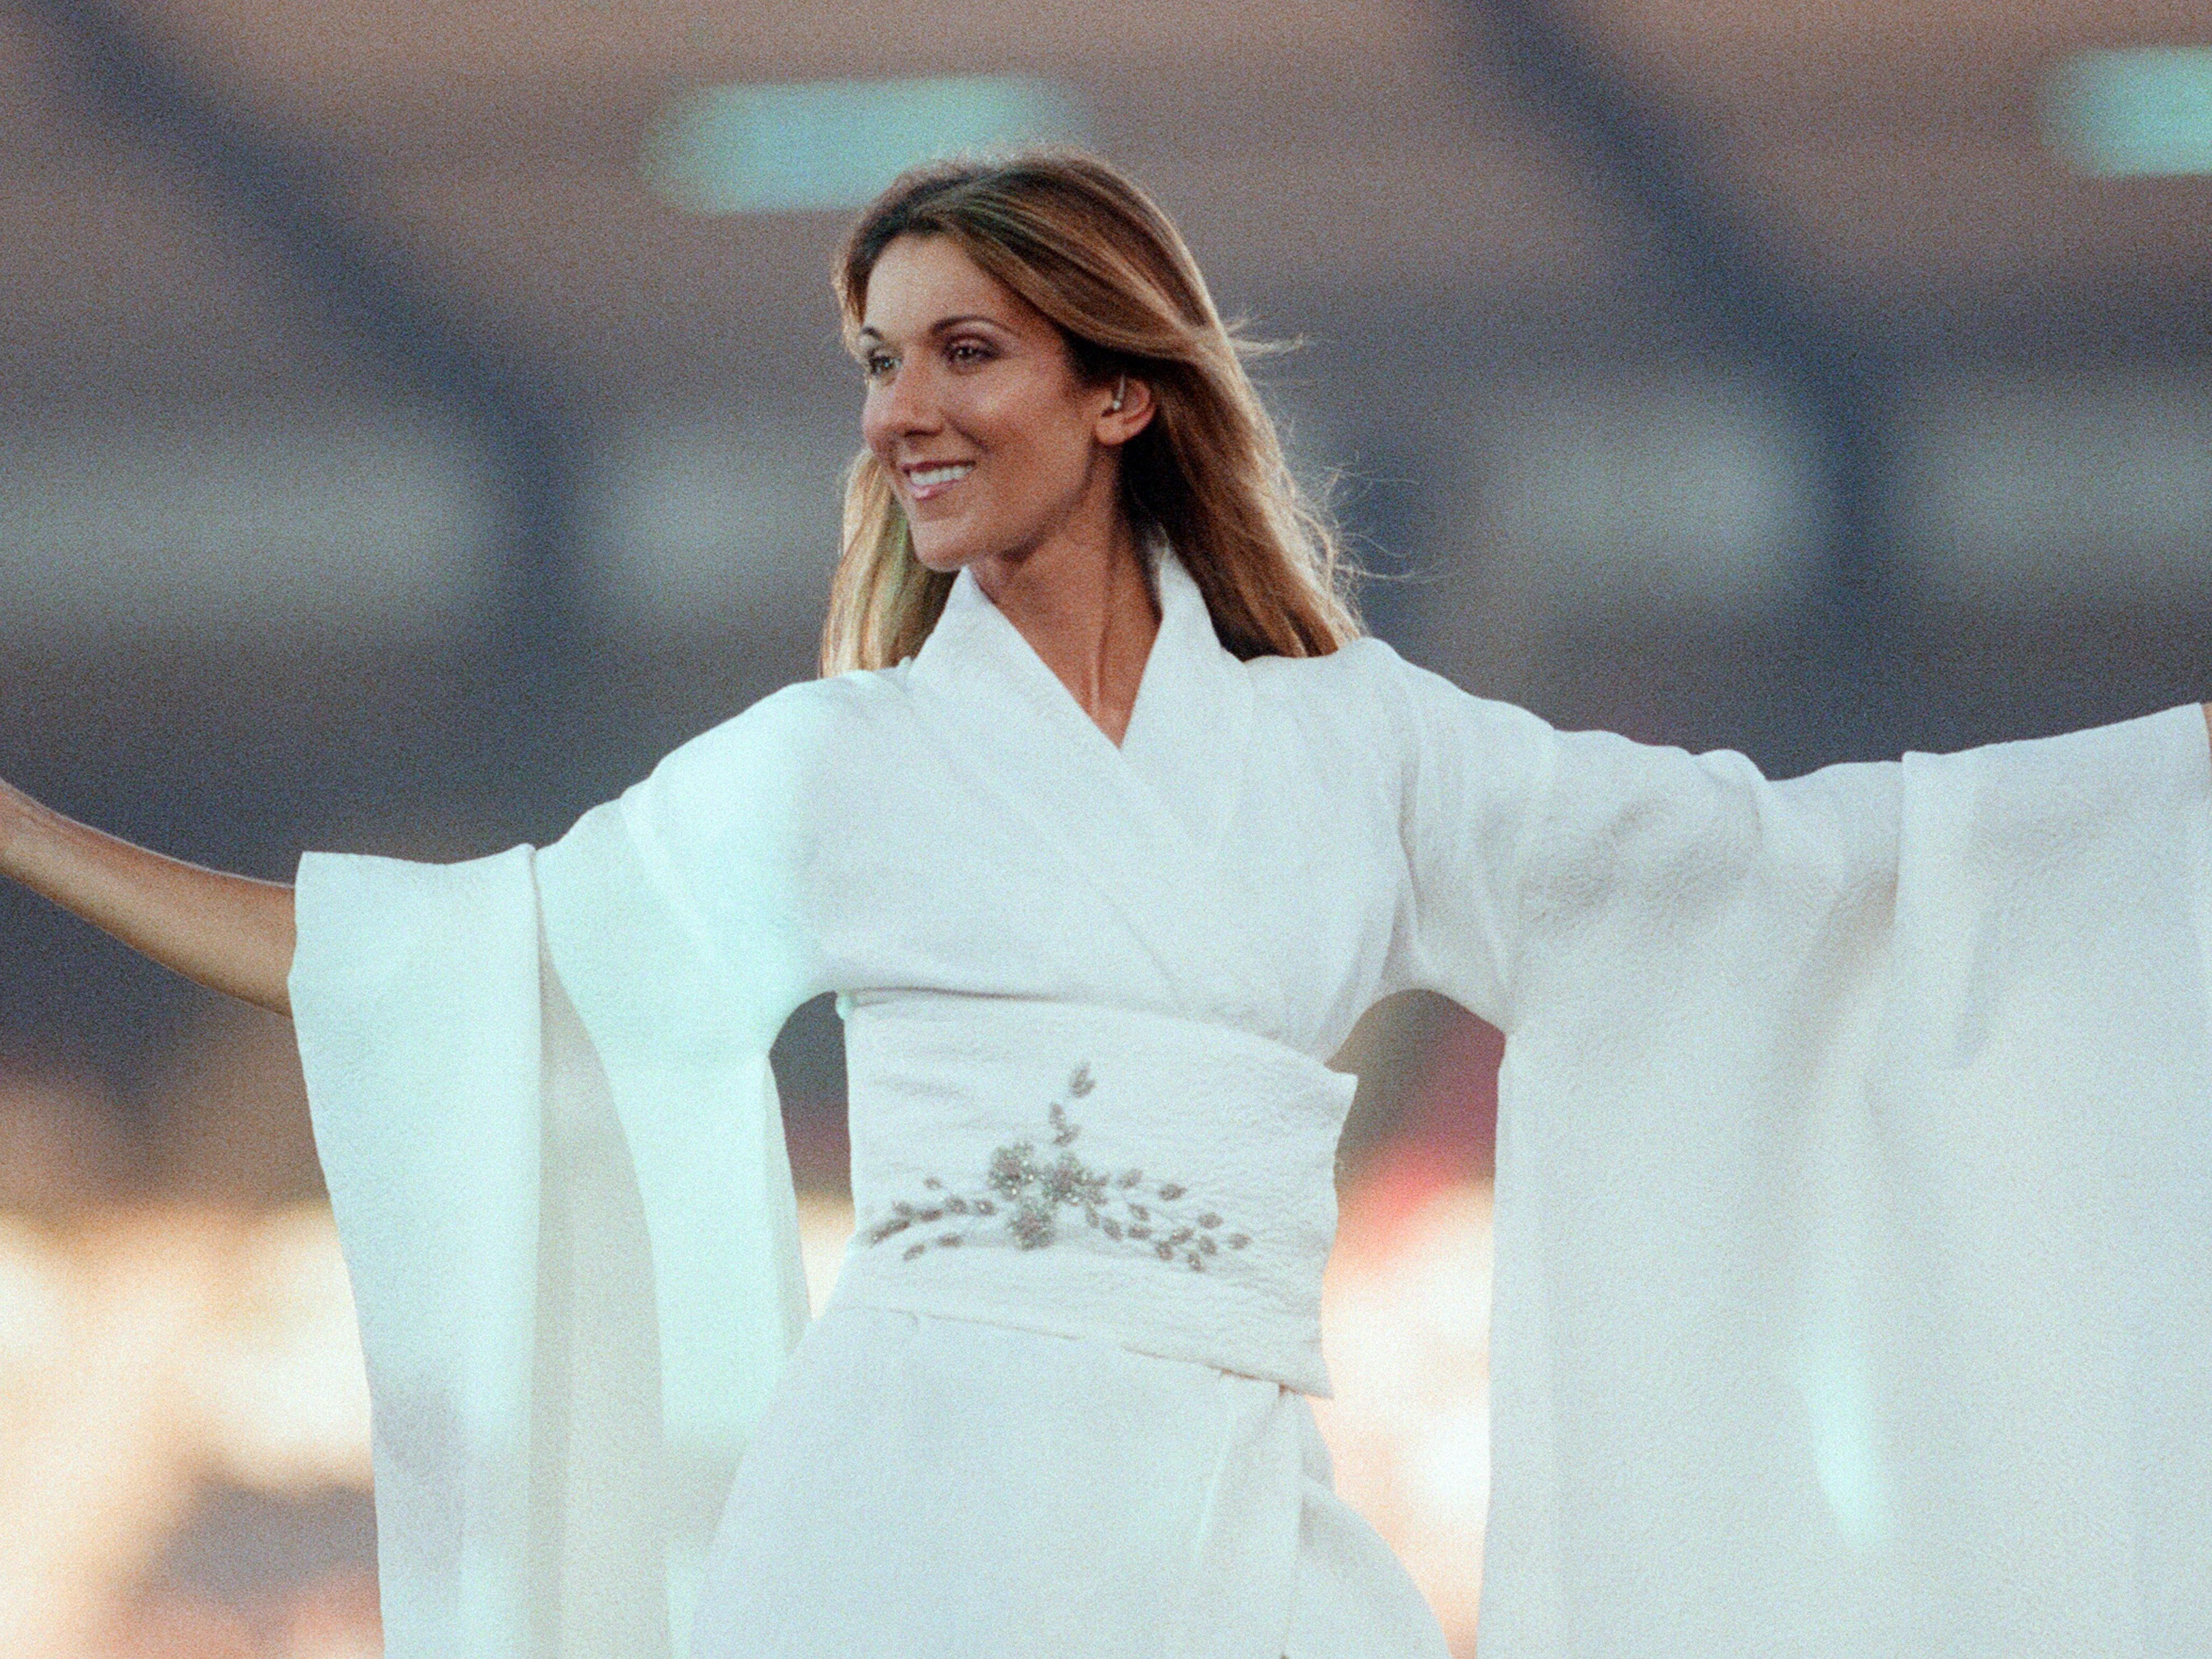 Celine Dion Surprised A Couple At Their Wedding By Showing Up To